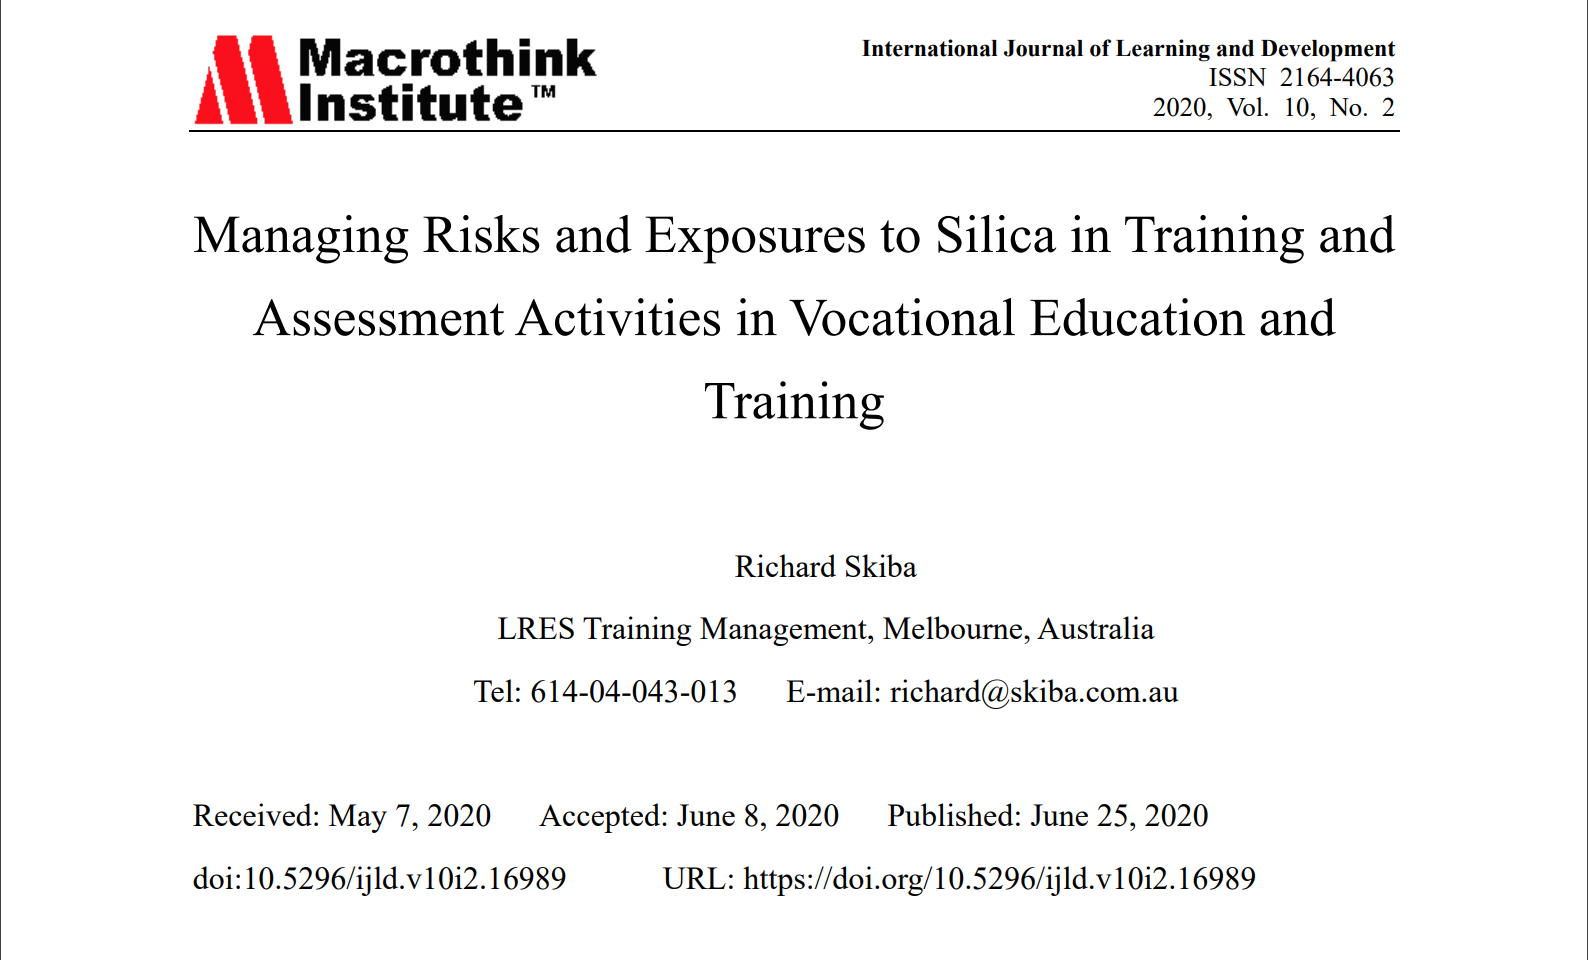 Managing Risks and Exposures to Silica in Training and Assessment Activities in Vocational Education and Training